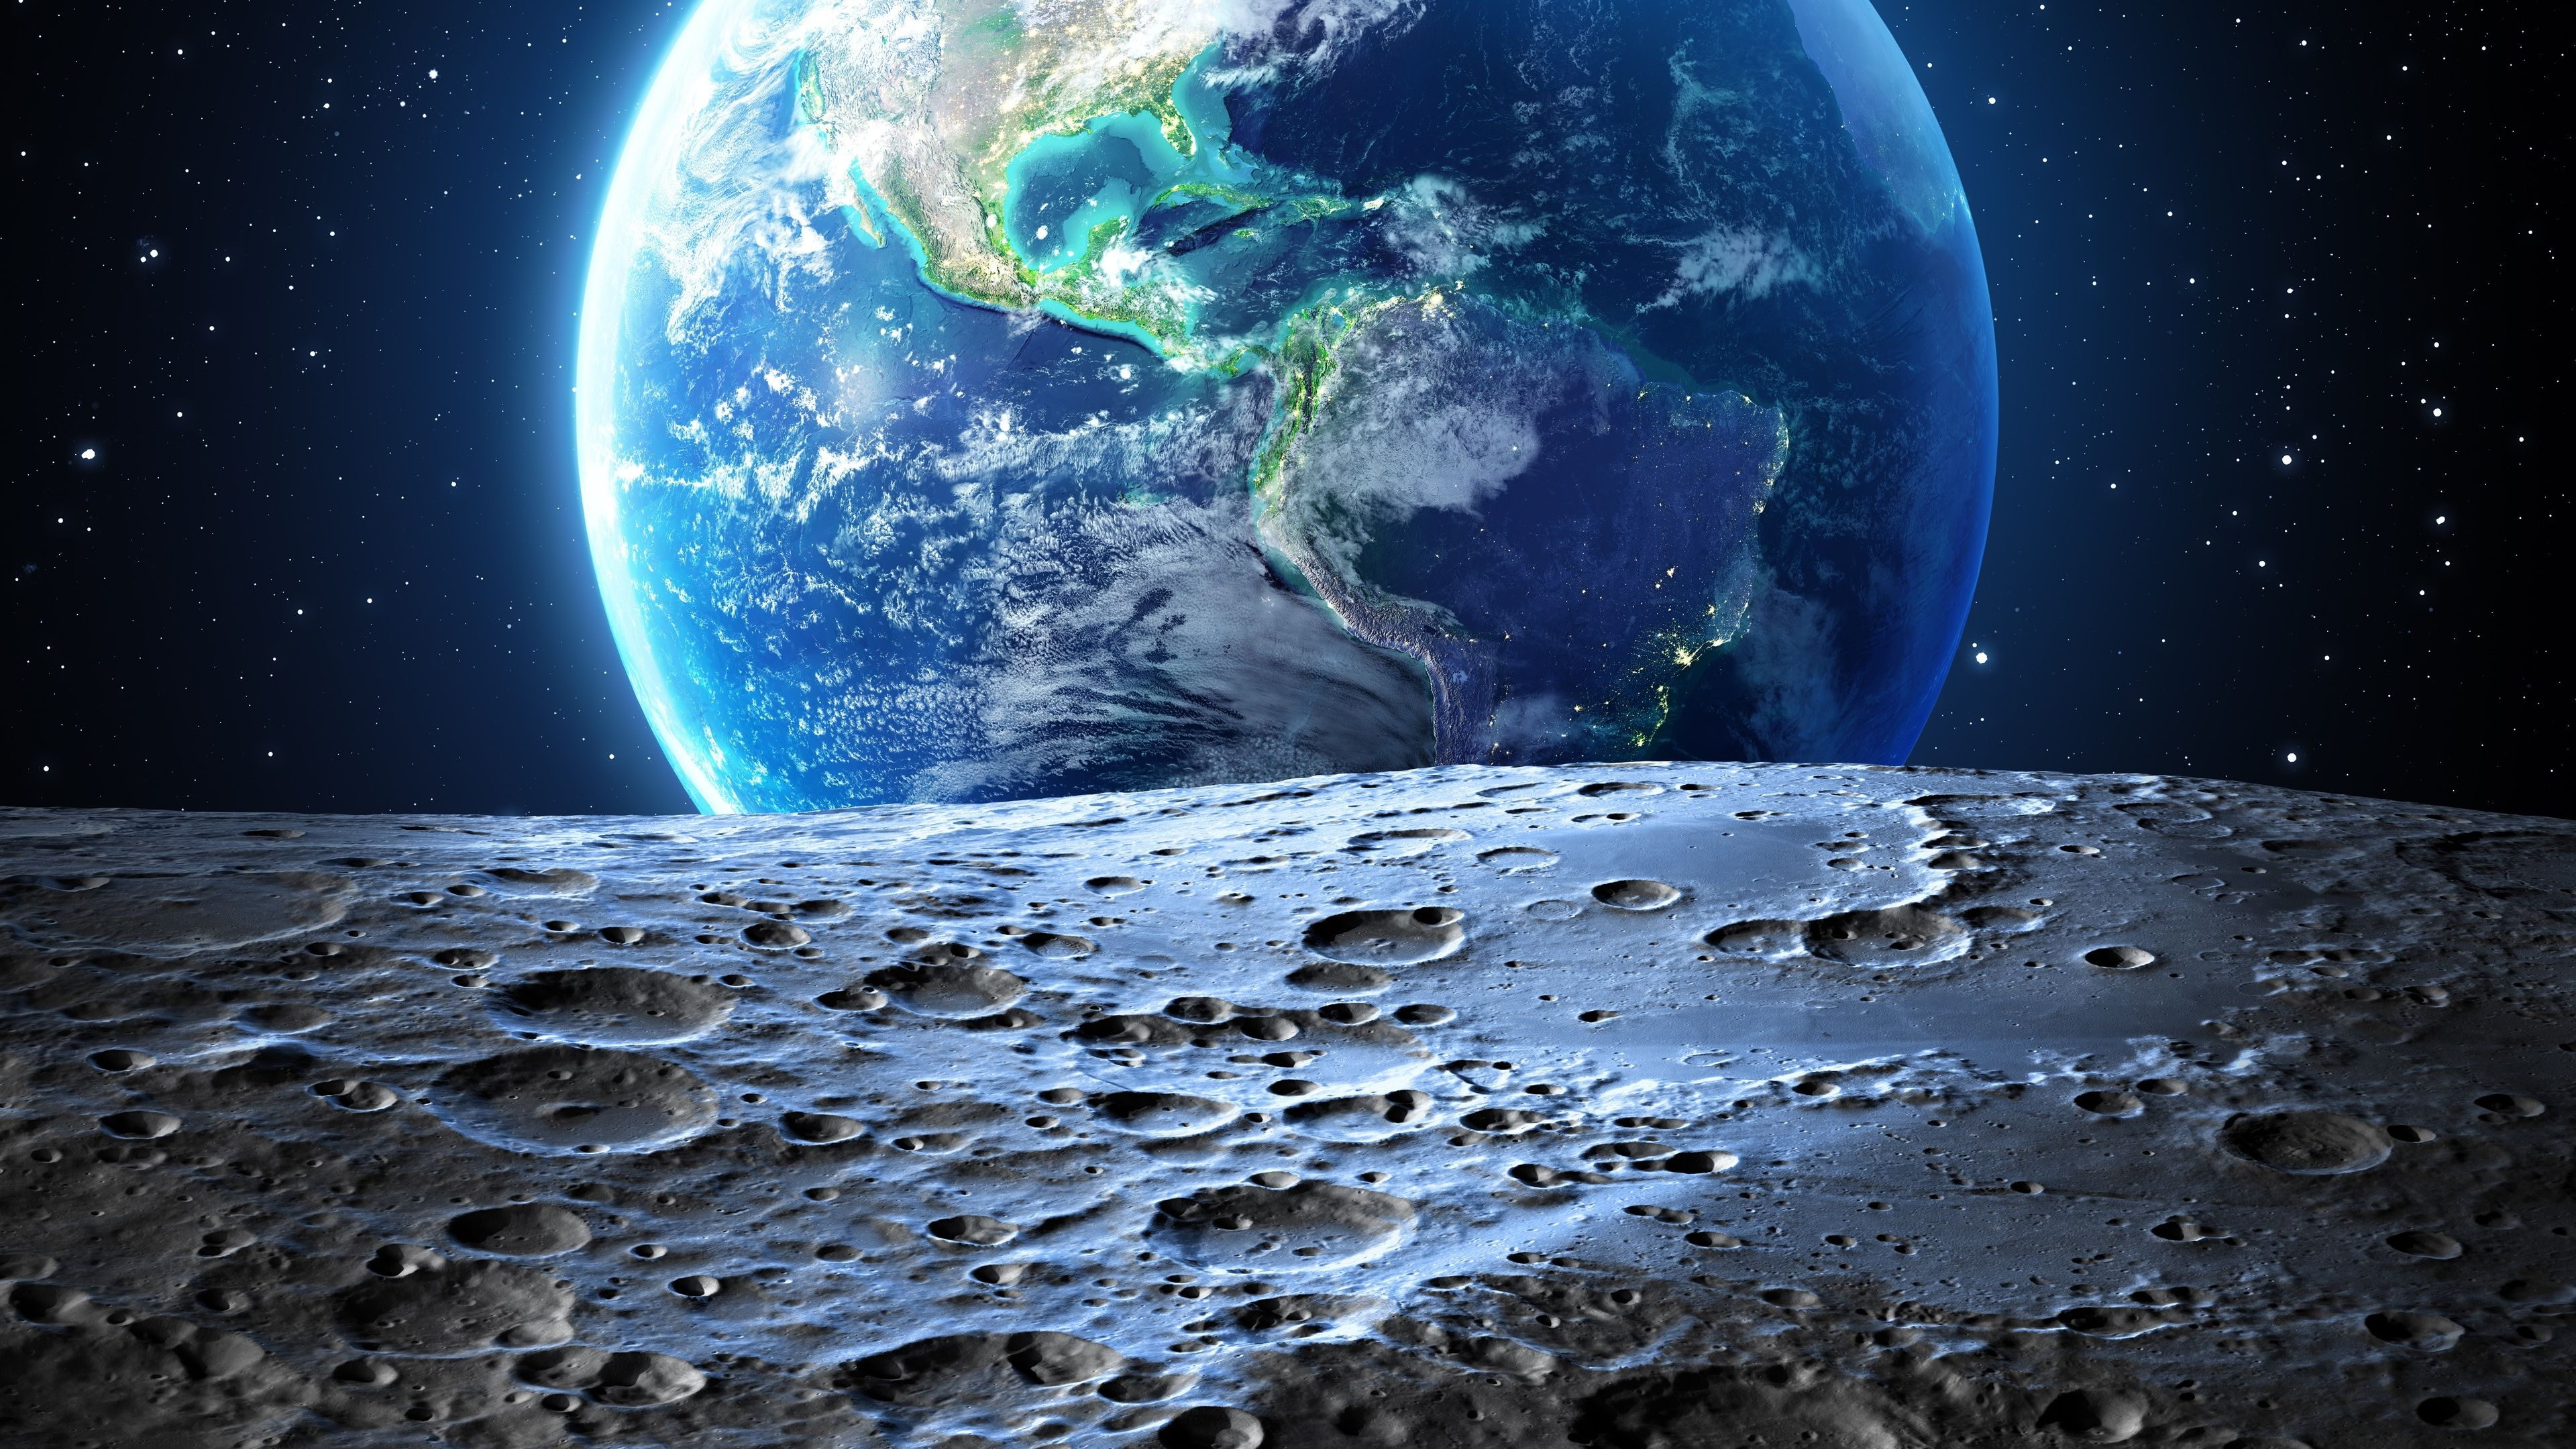 Earth Moon 4k Nature Wallpapers Moon Wallpapers Hd Wallpapers Earth Wallpapers Digital Universe Wallpapers 4k W Wallpaper Earth Earth View Wallpaper Space